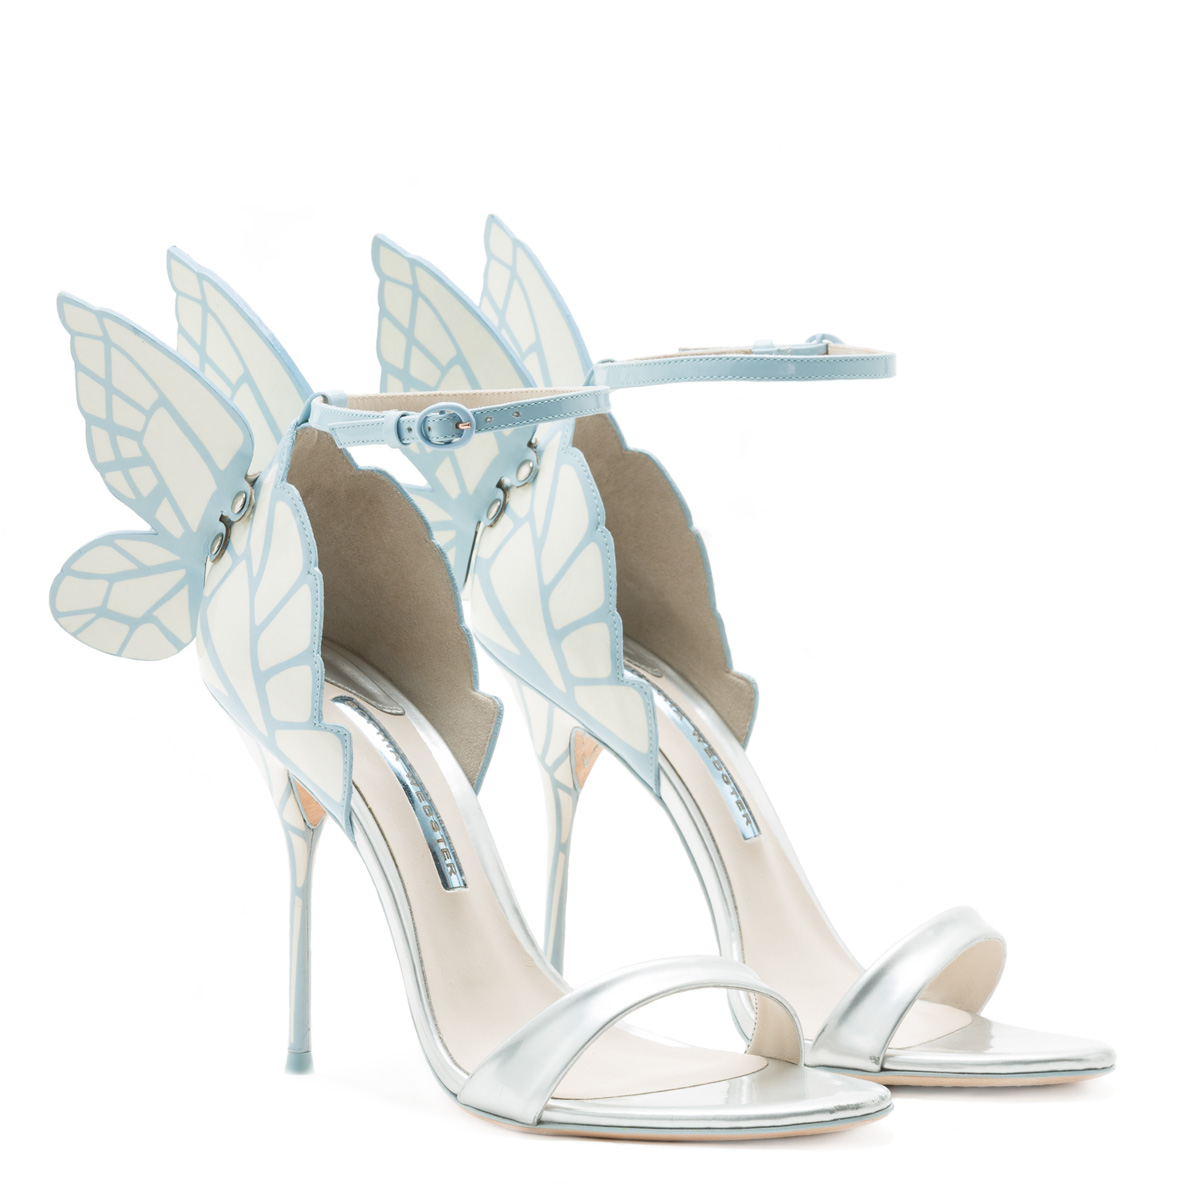 Sophia Webster Bridal Chiara Ice Sandal